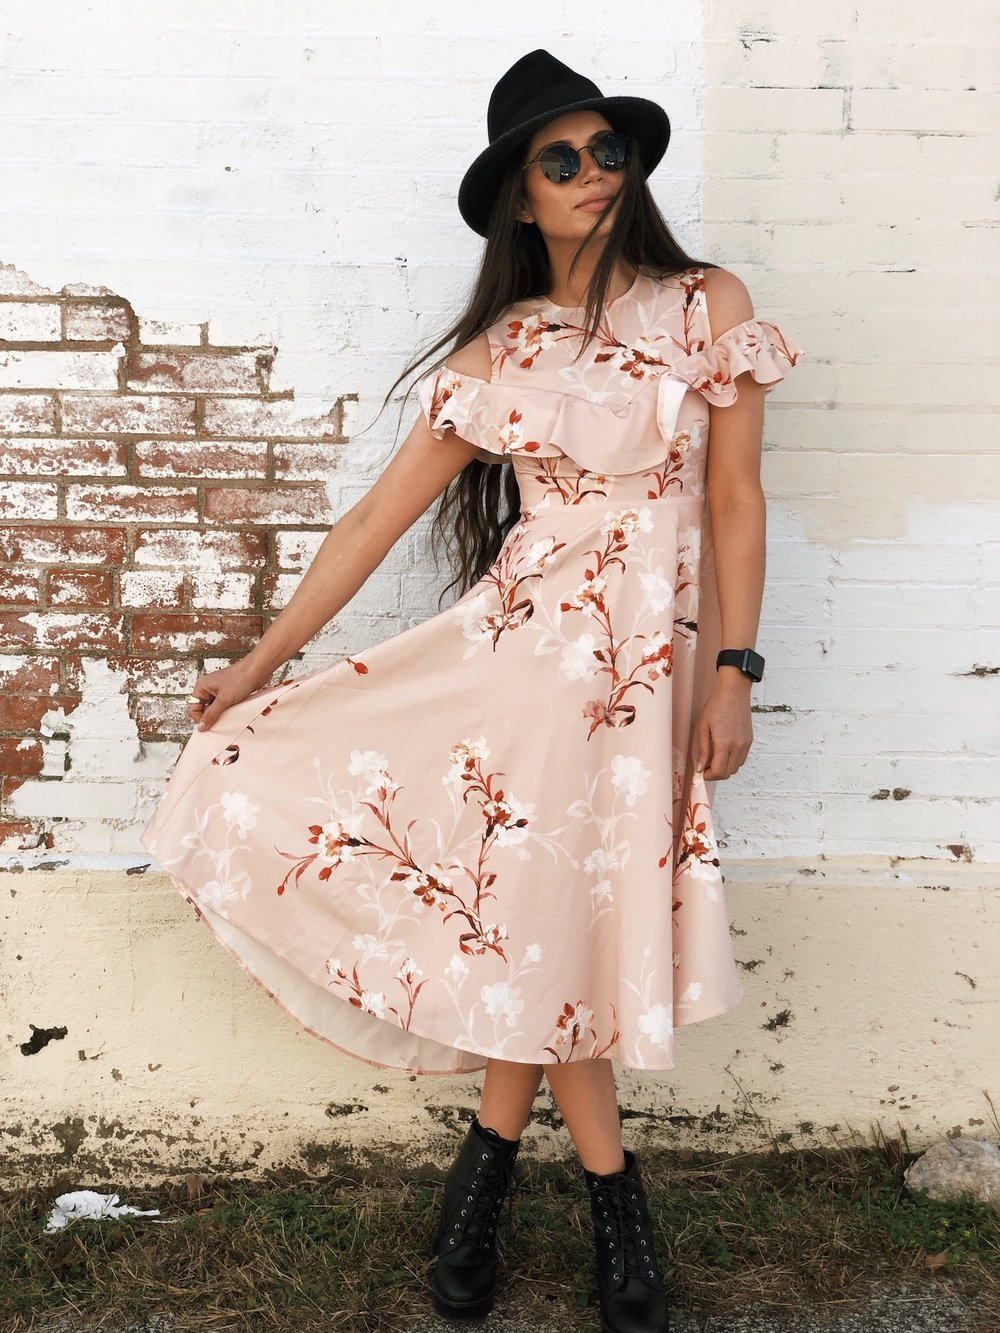 Floral dress with black boots - A Week Of Cruelty-Free Outfits & Vegan Beauty With Jessica Salazar From All There August on The Good Trade